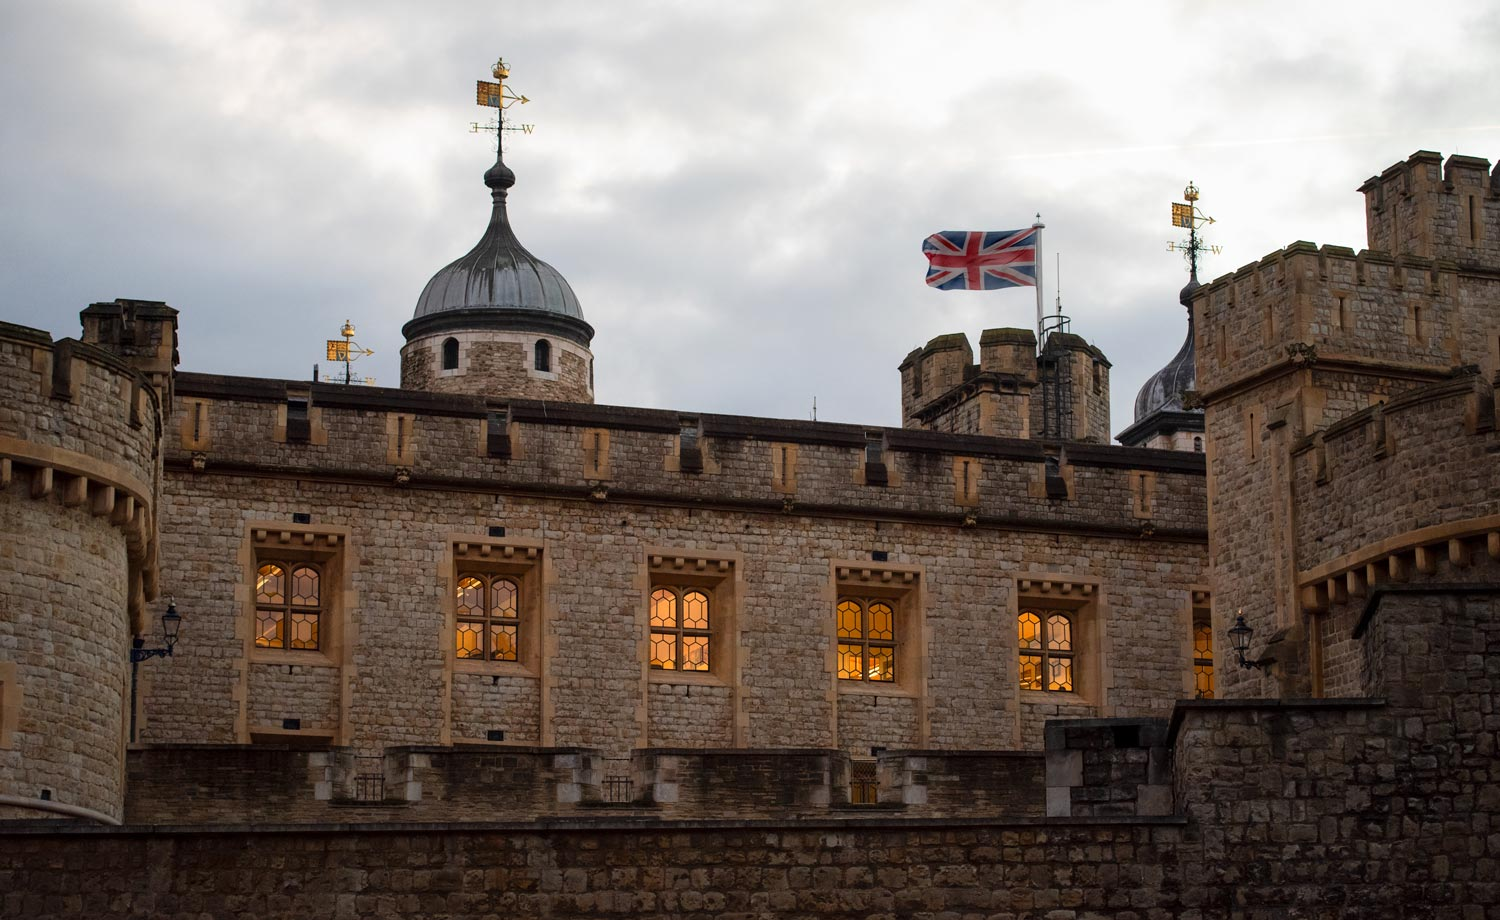 The Tower of London - Enduring Symbol of the British Monarchy